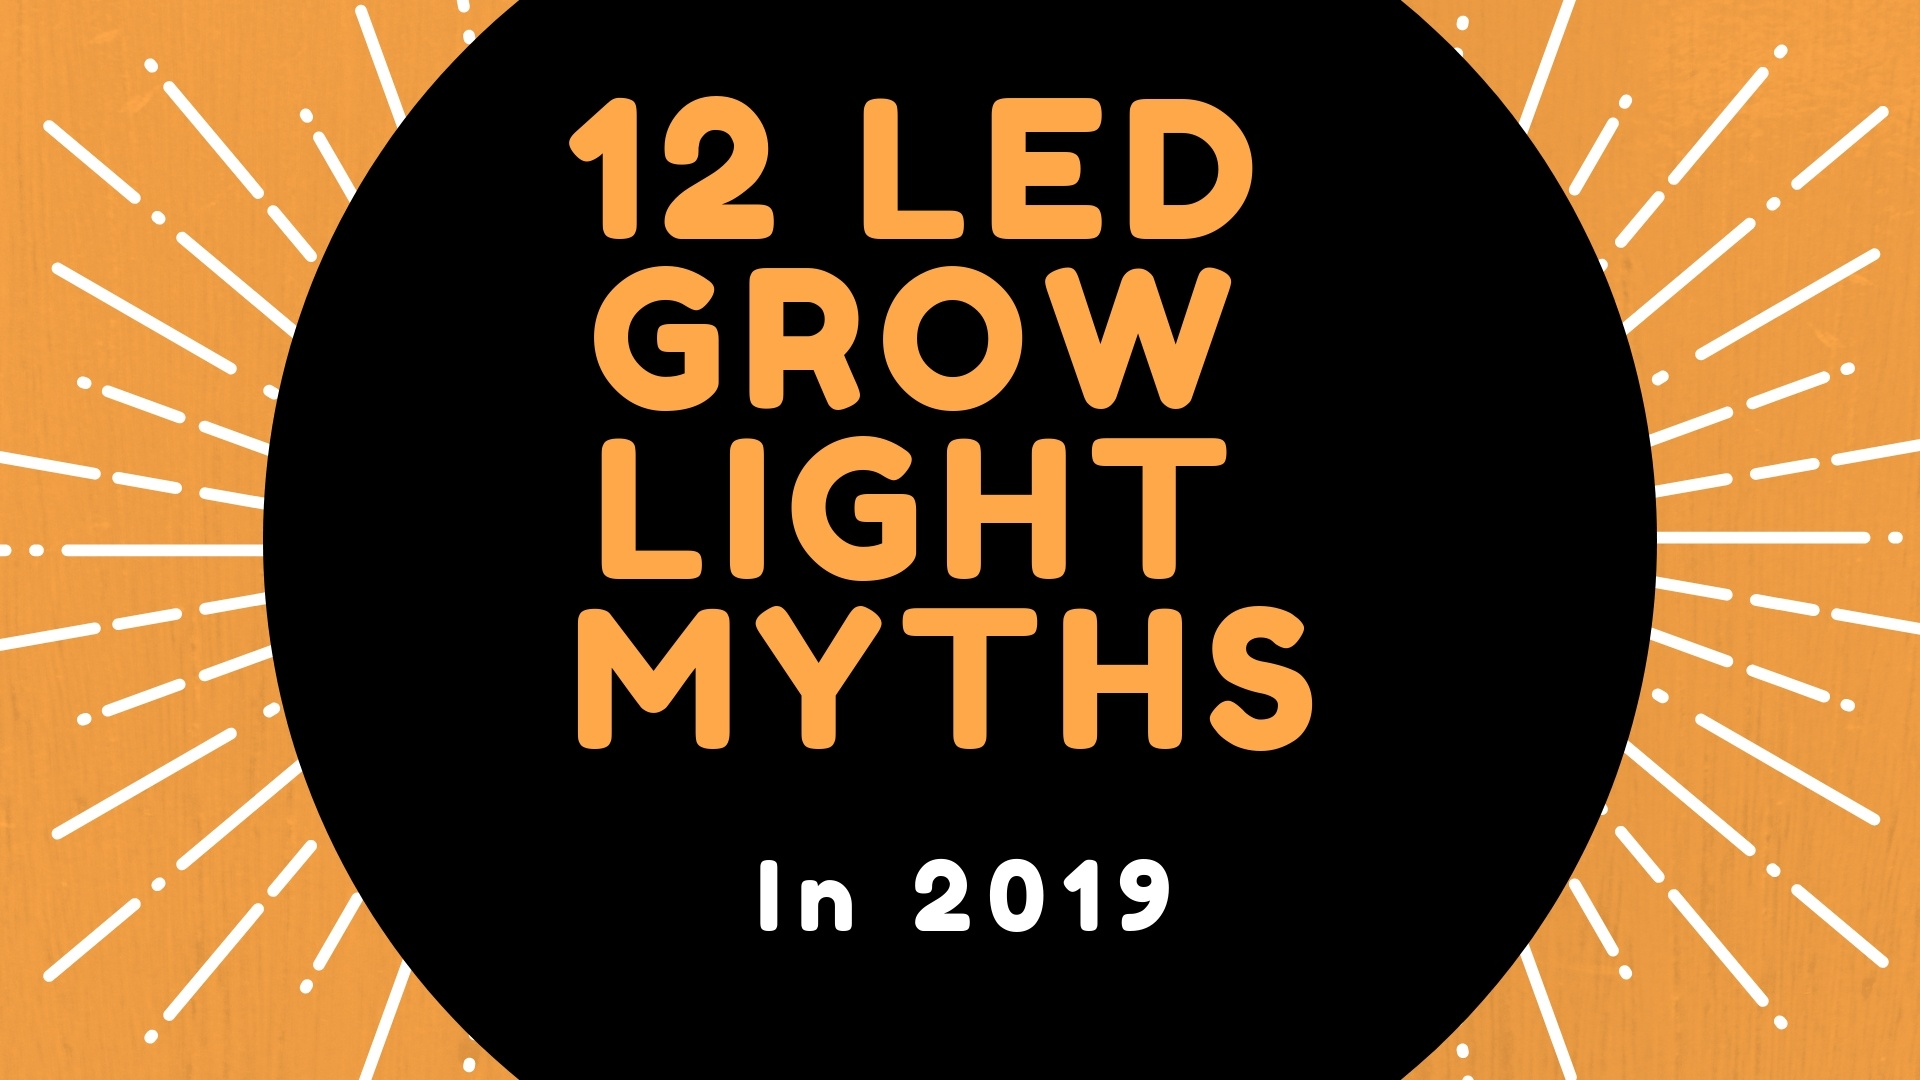 12 LED Grow Light Myths